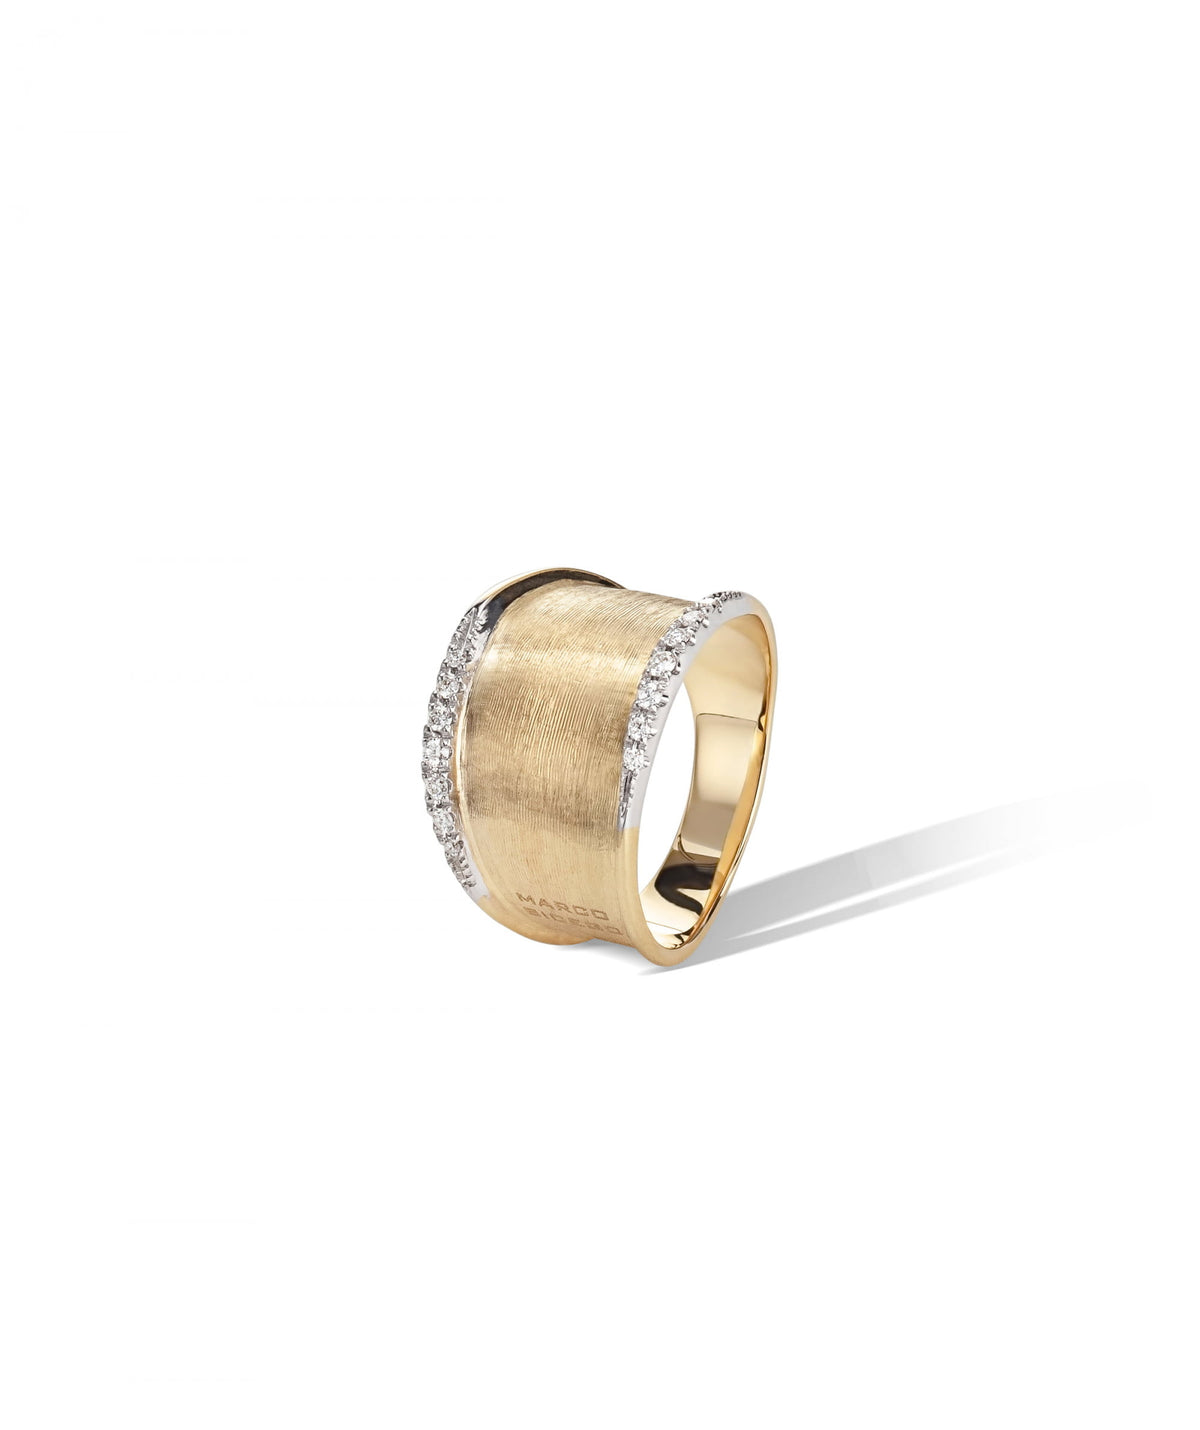 Lunaria Ring in 18k Yellow Gold with Diamonds Medium Band